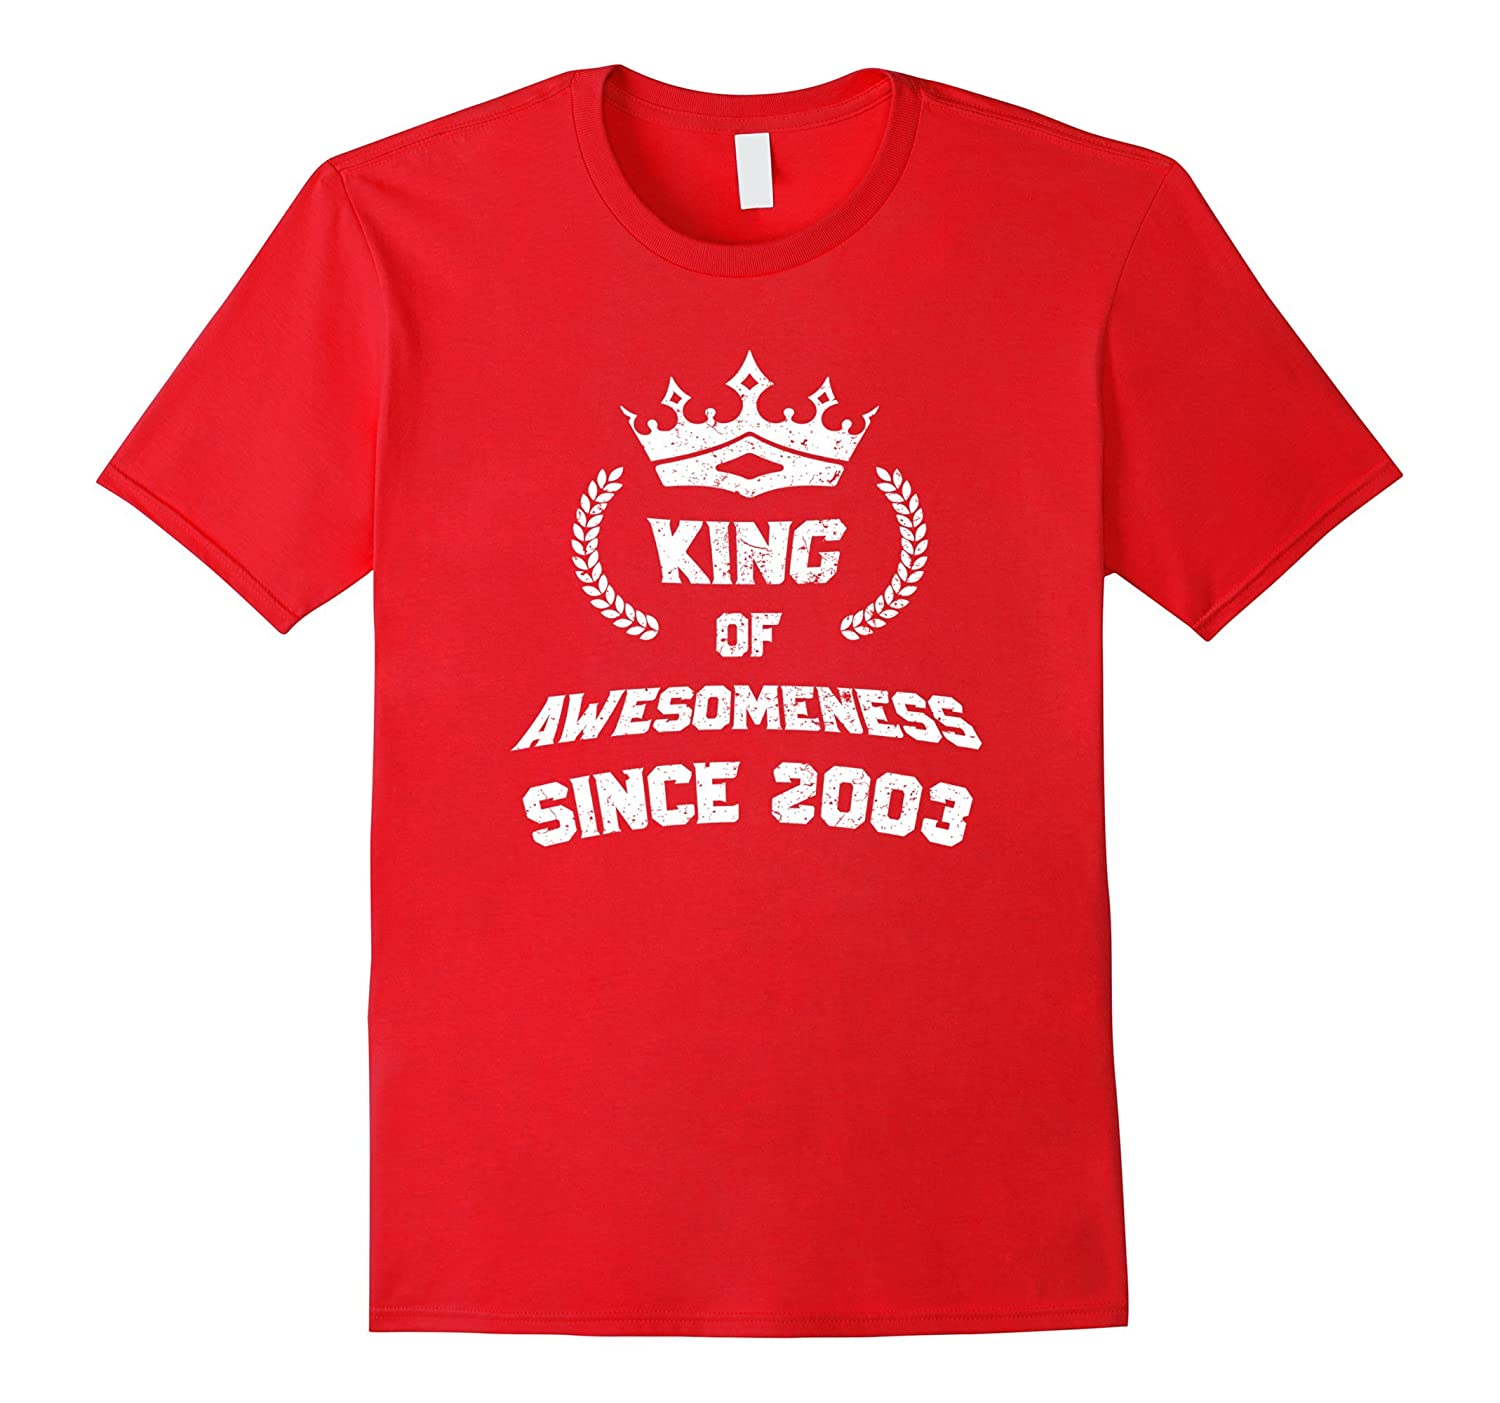 King Of Awesomeness 14th Birthday T-Shirt Age 14 For Boys-ah my shirt one gift